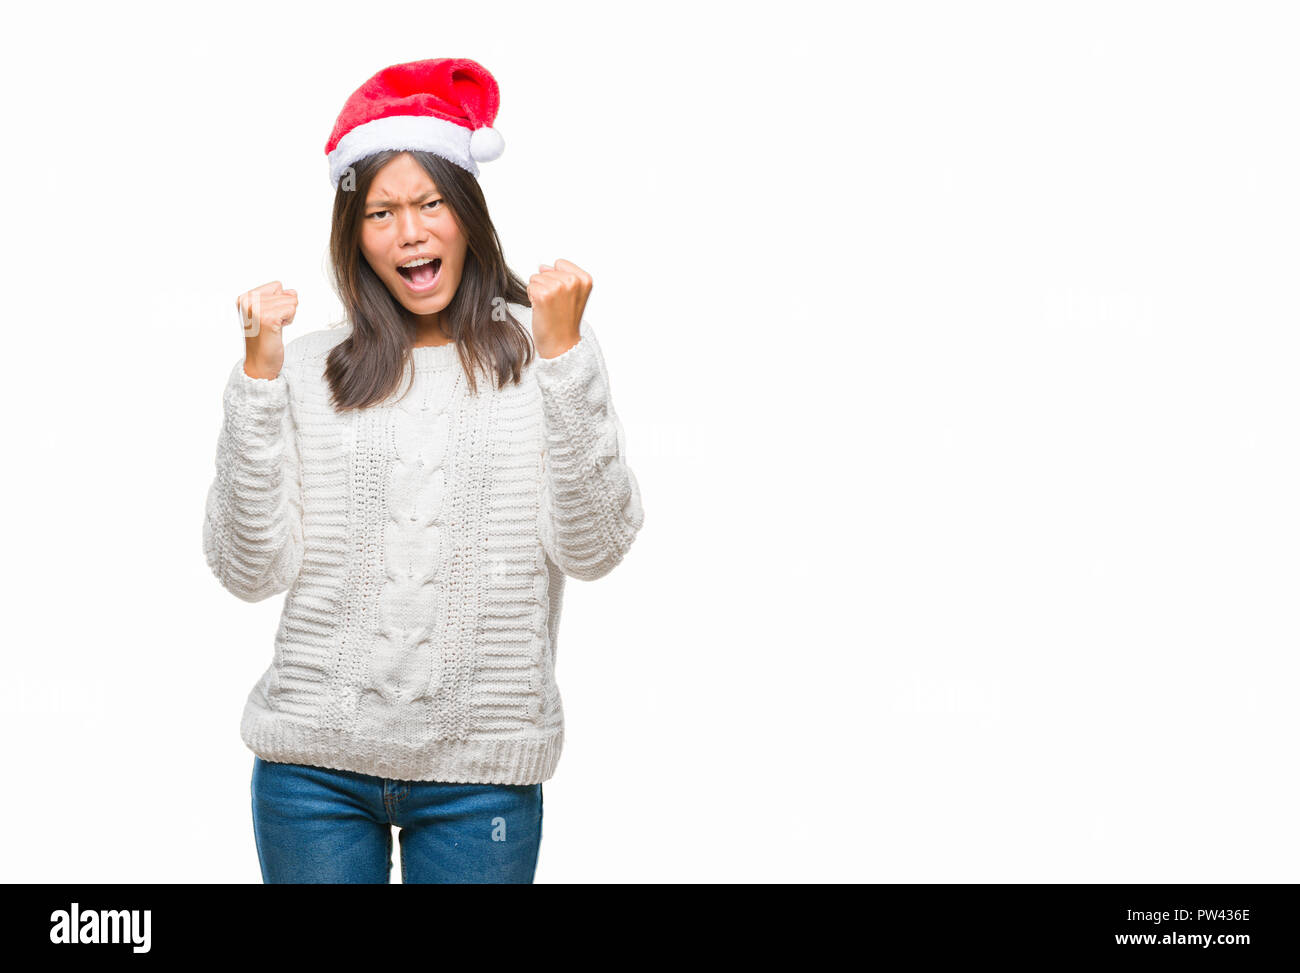 Young asian woman wearing christmas hat over isolated background very happy and excited doing winner gesture with arms raised, smiling and screaming f - Stock Image